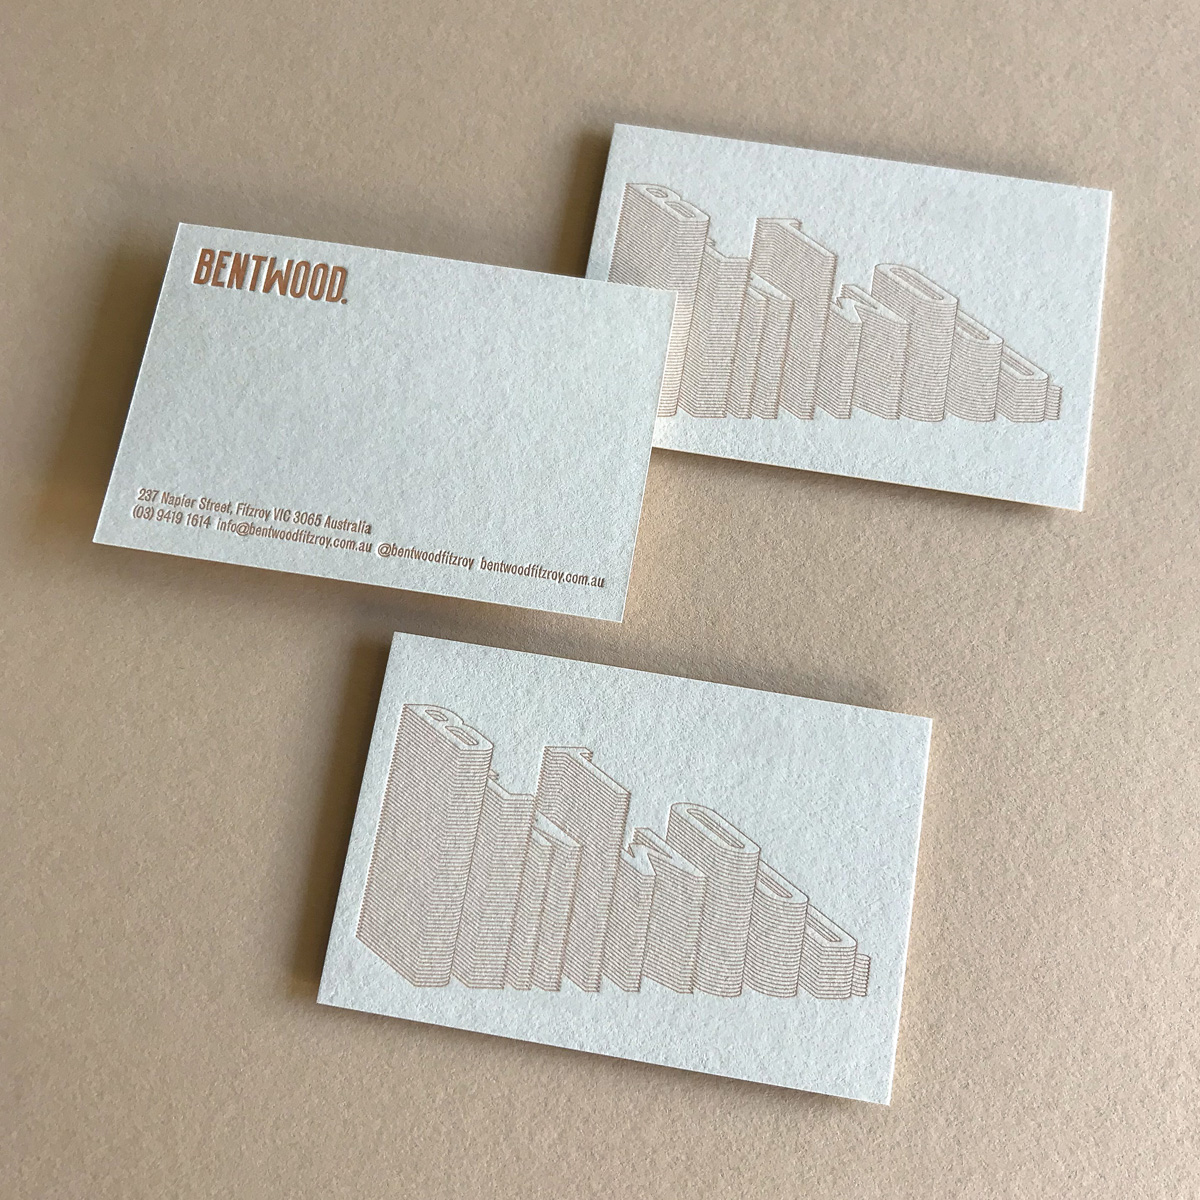 Custom letterpress business cards for Bentwood on Colorplan Mist 4